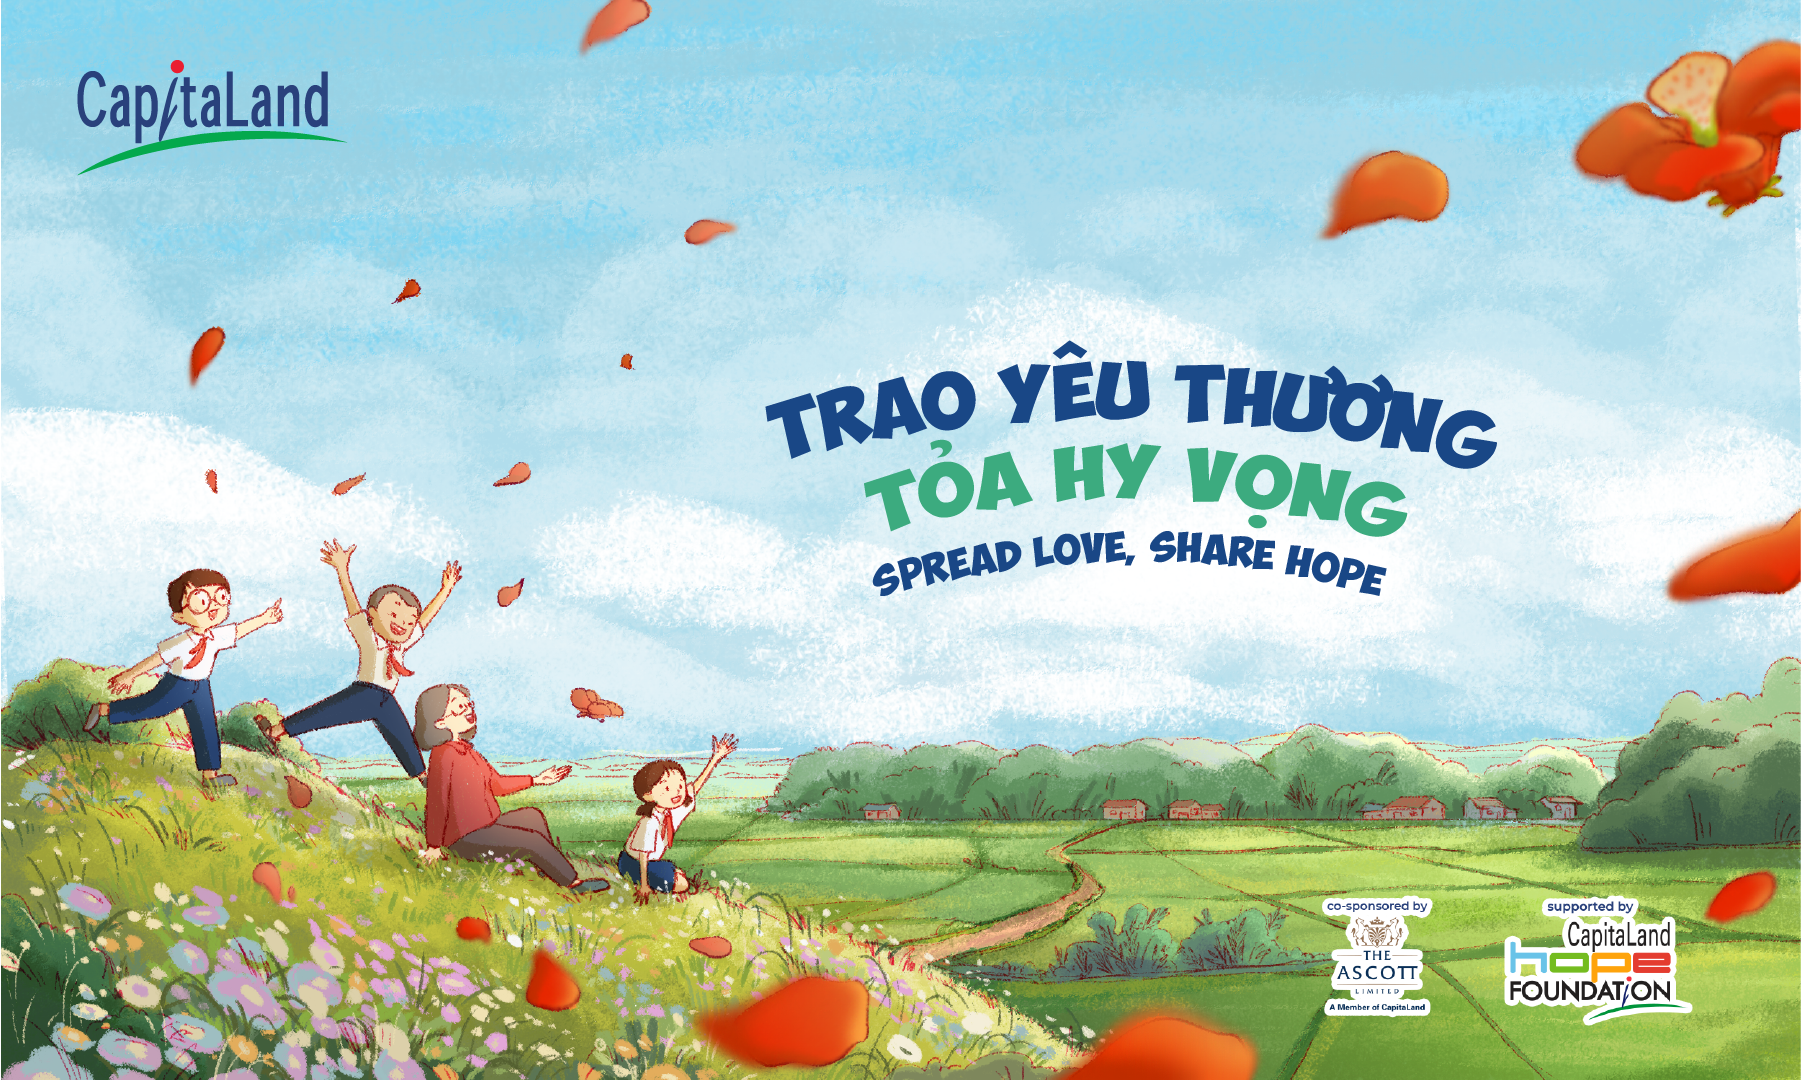 capitaland vietnam doubles pledge in spread love share hope campaign